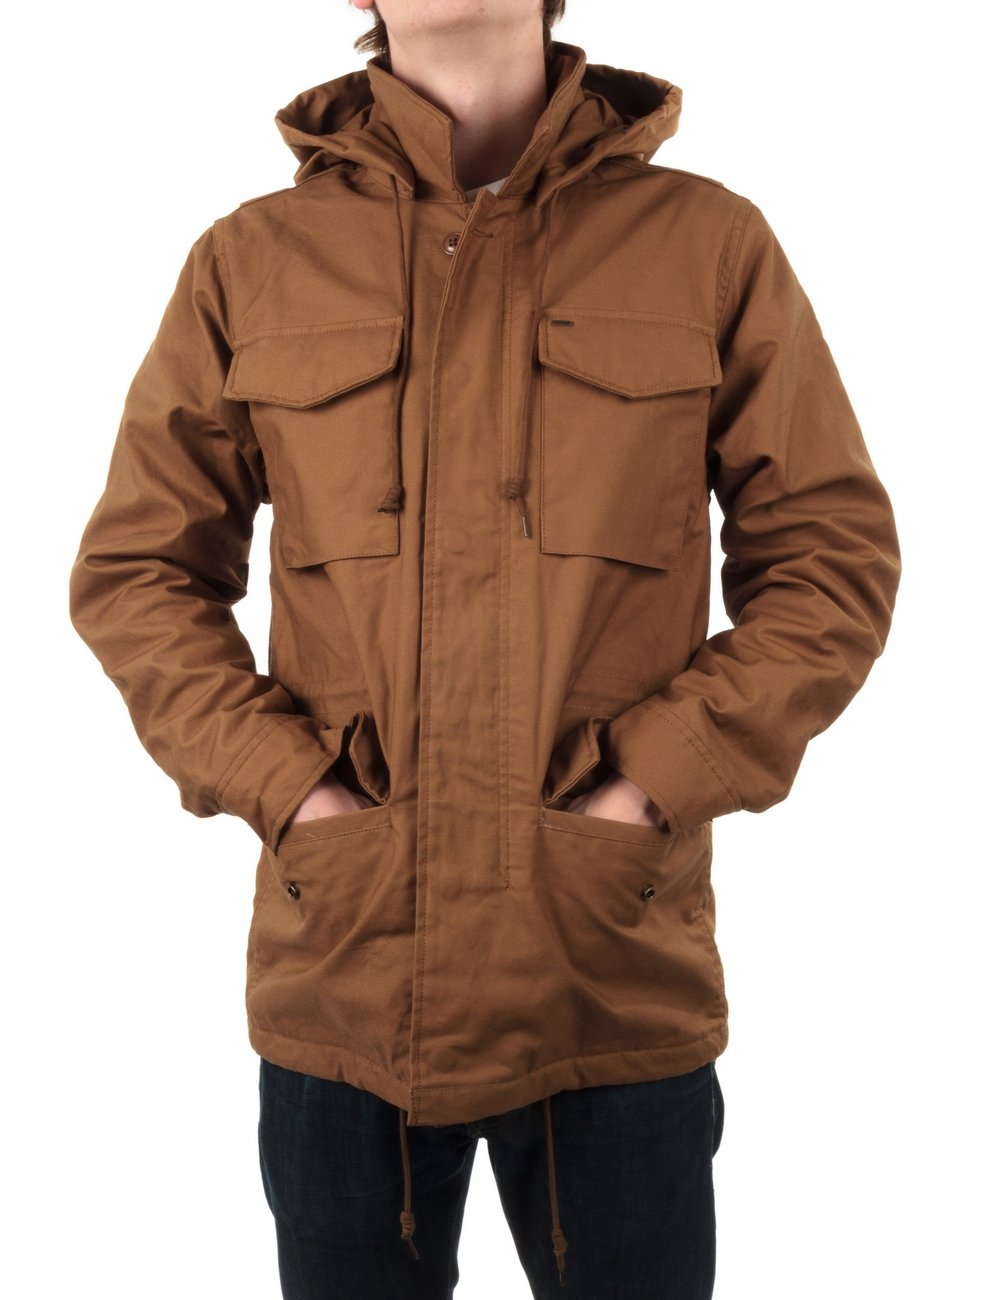 Obey brown leather jacket